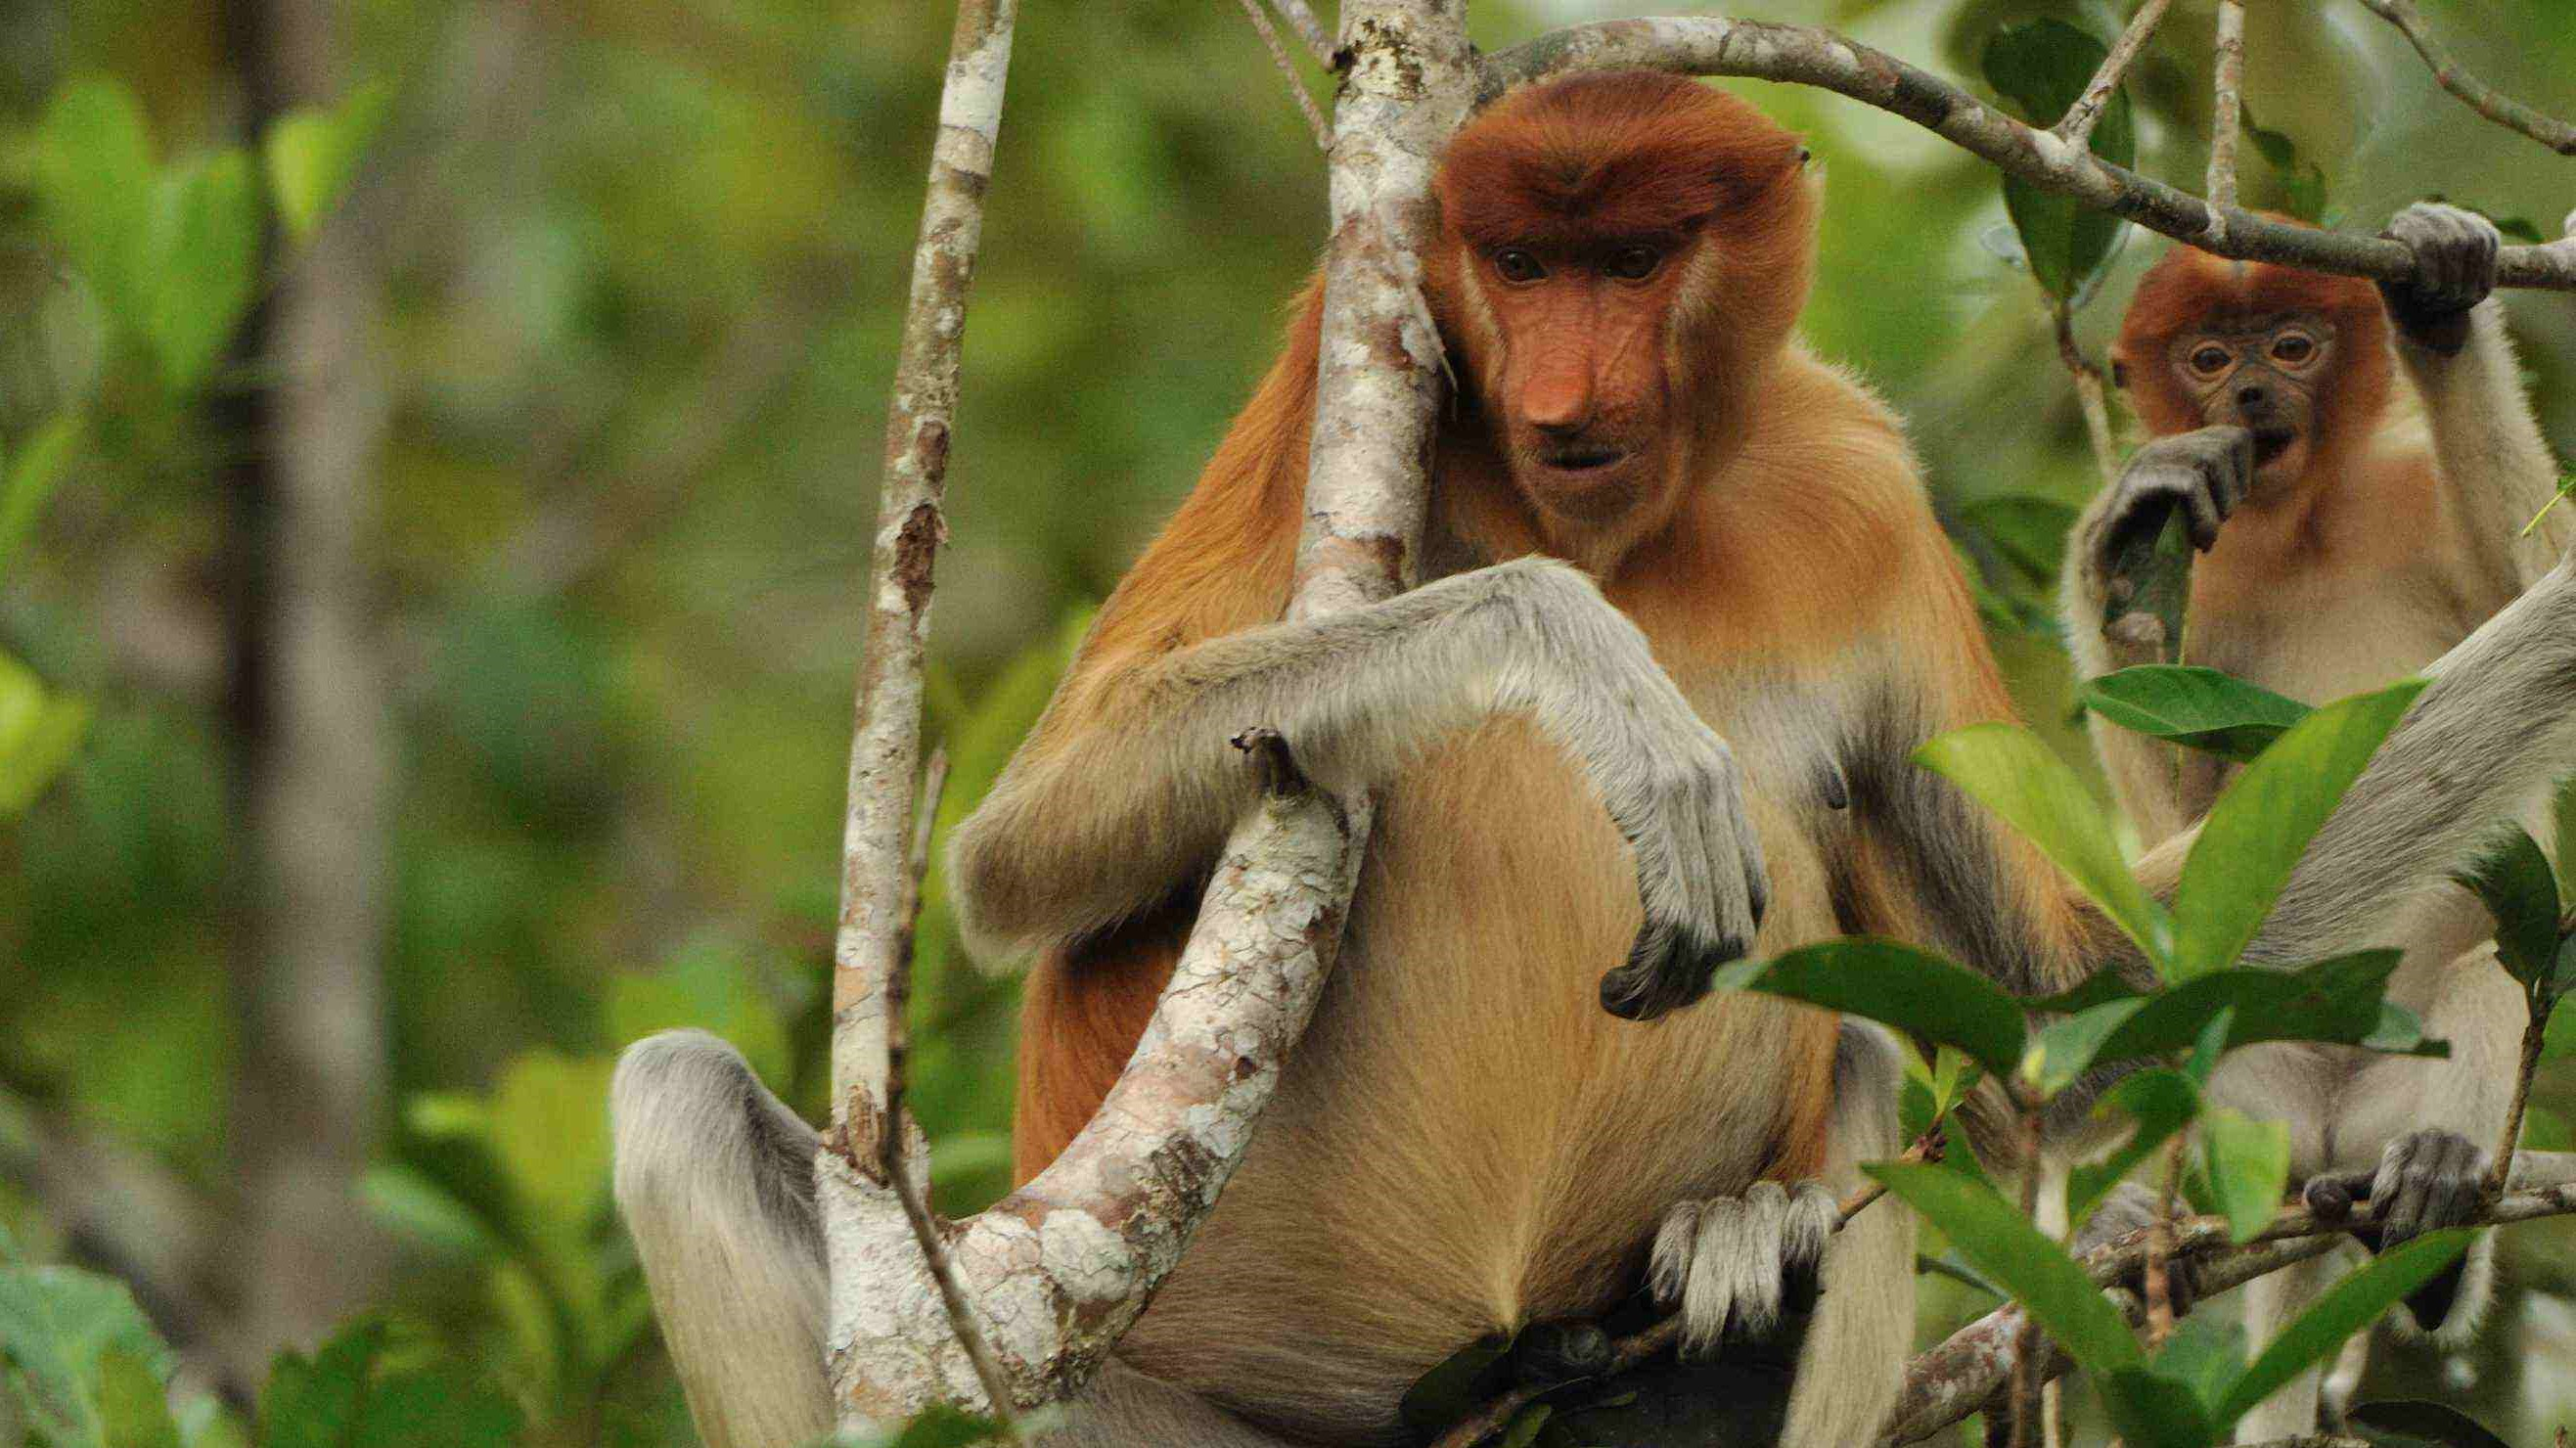 wildlife, floating market, borneo, kalimantan, indonesia, tour, trip, journey, safari, guide, banjarmasin, orangutan islands, orangutan, proboscis monkey, palangkaraya